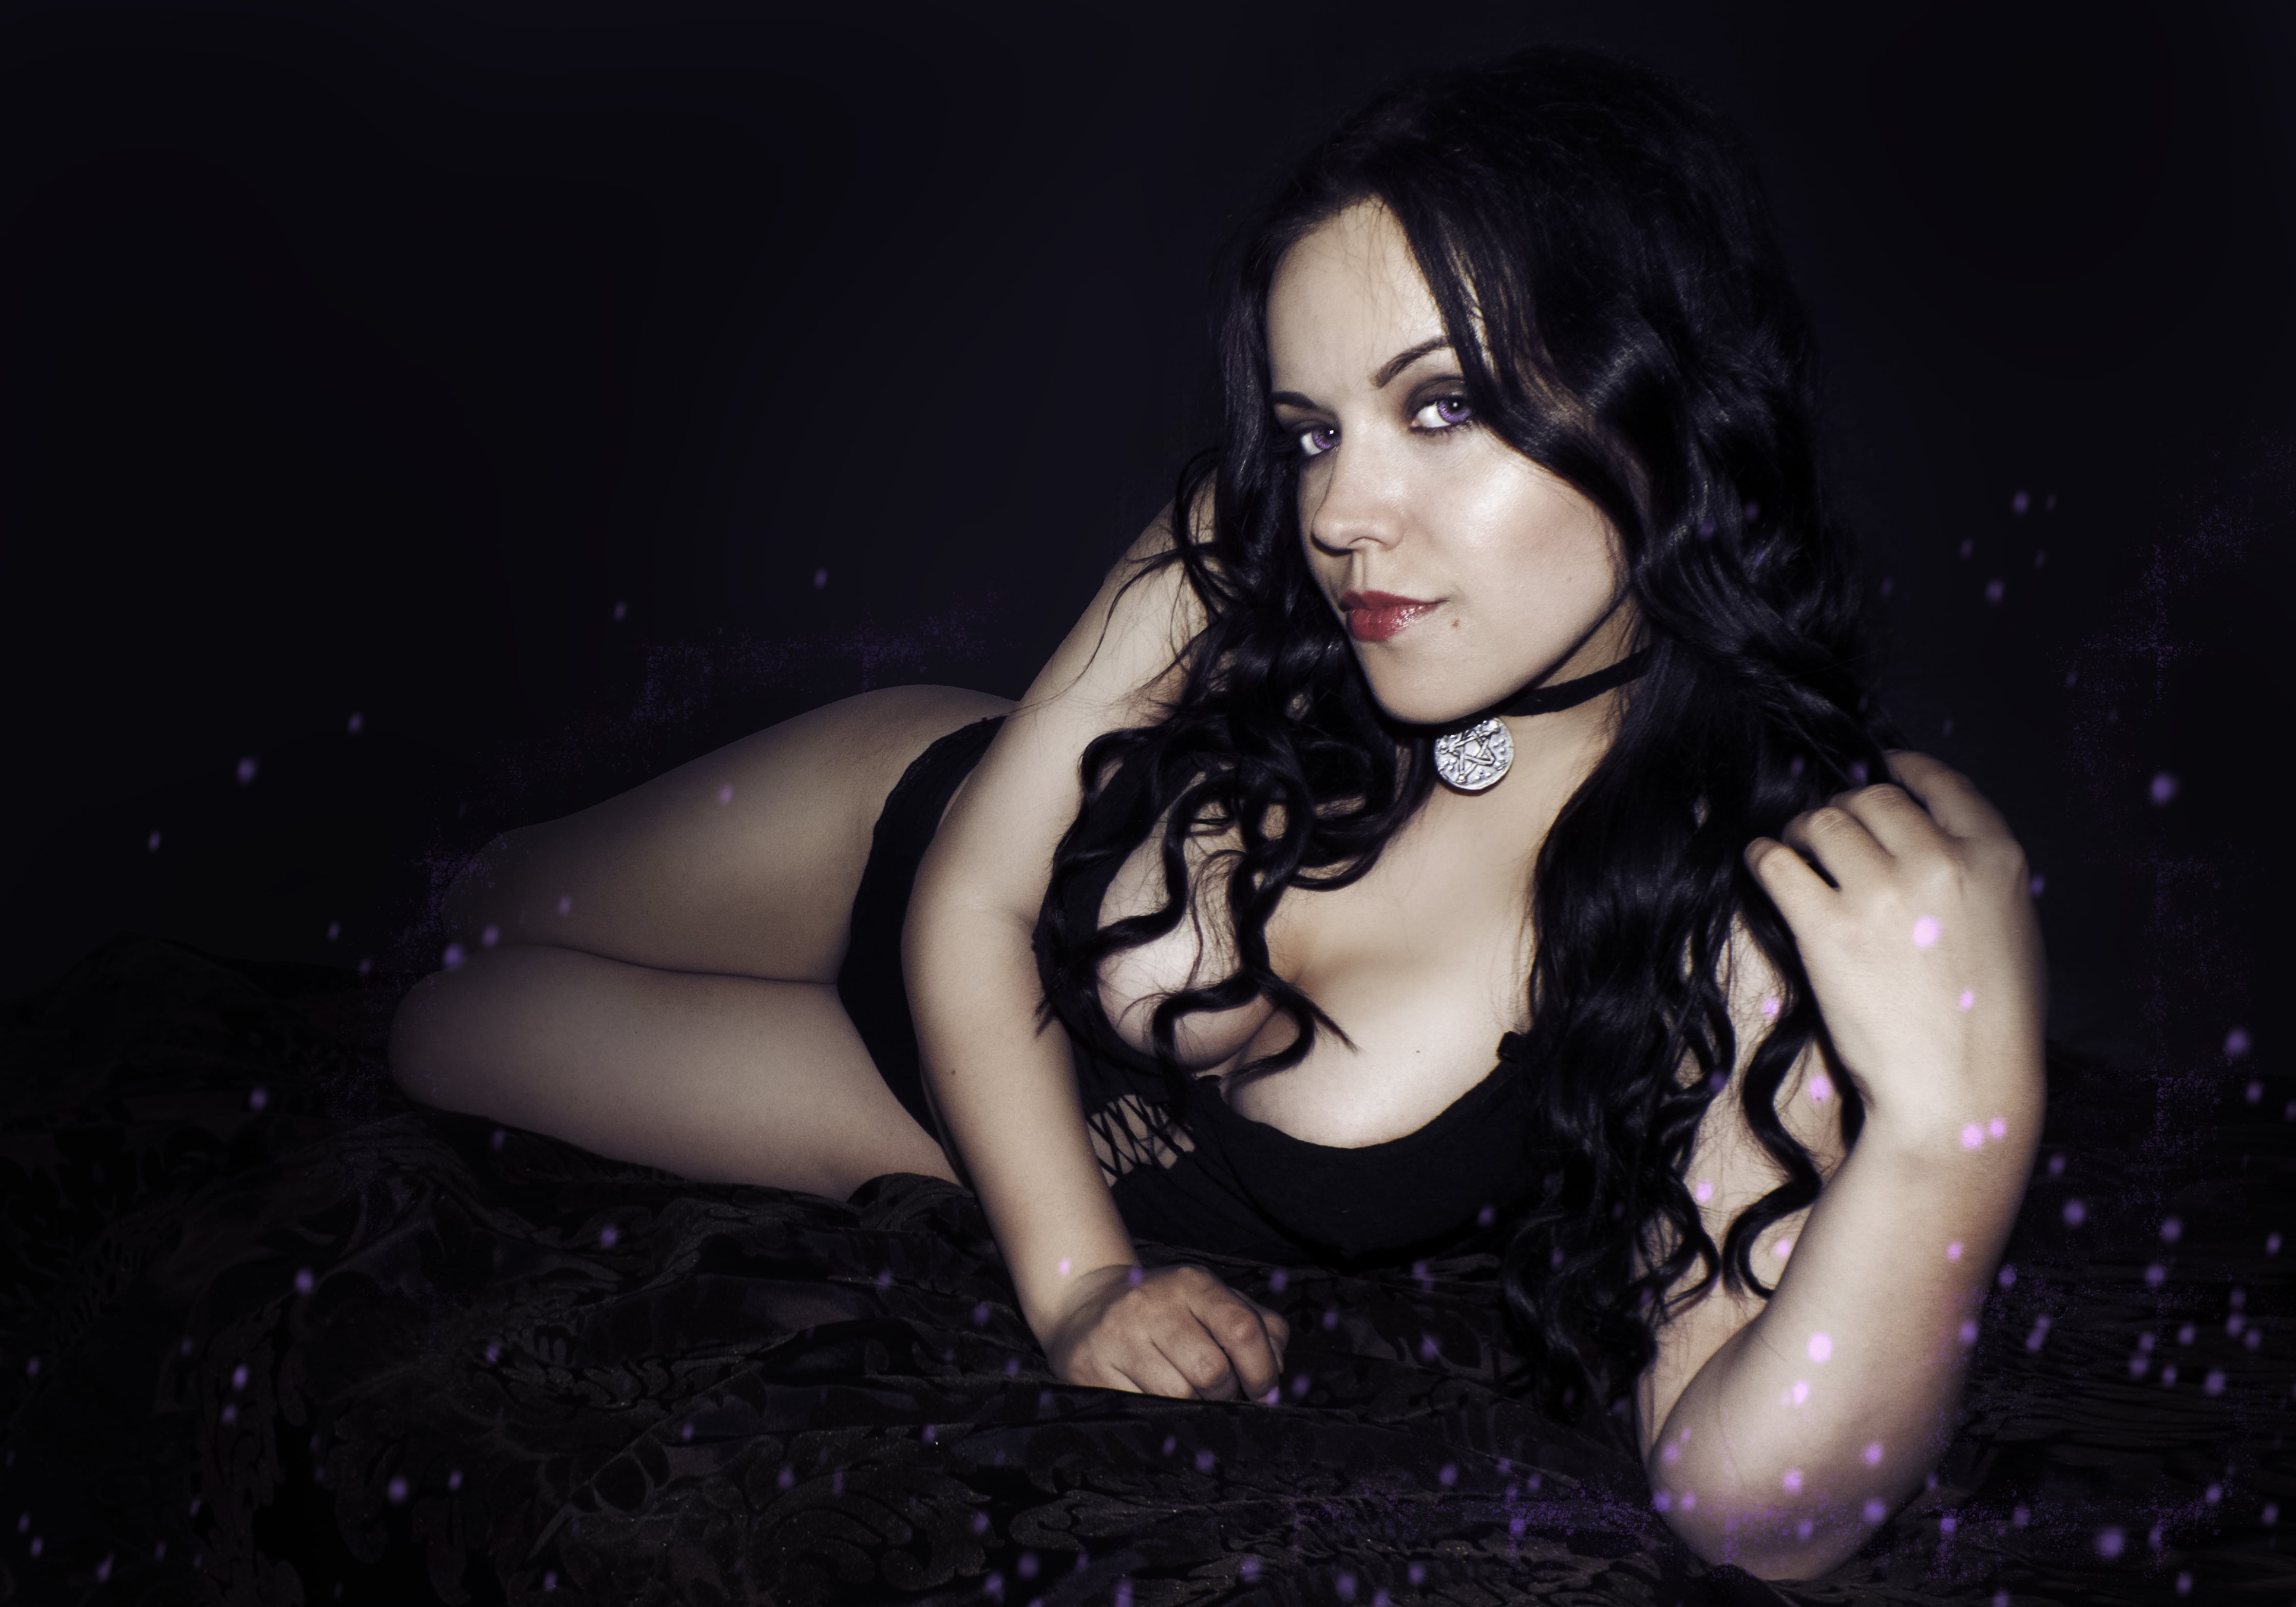 49 hot photos of the Yennefer from the Witcher series that